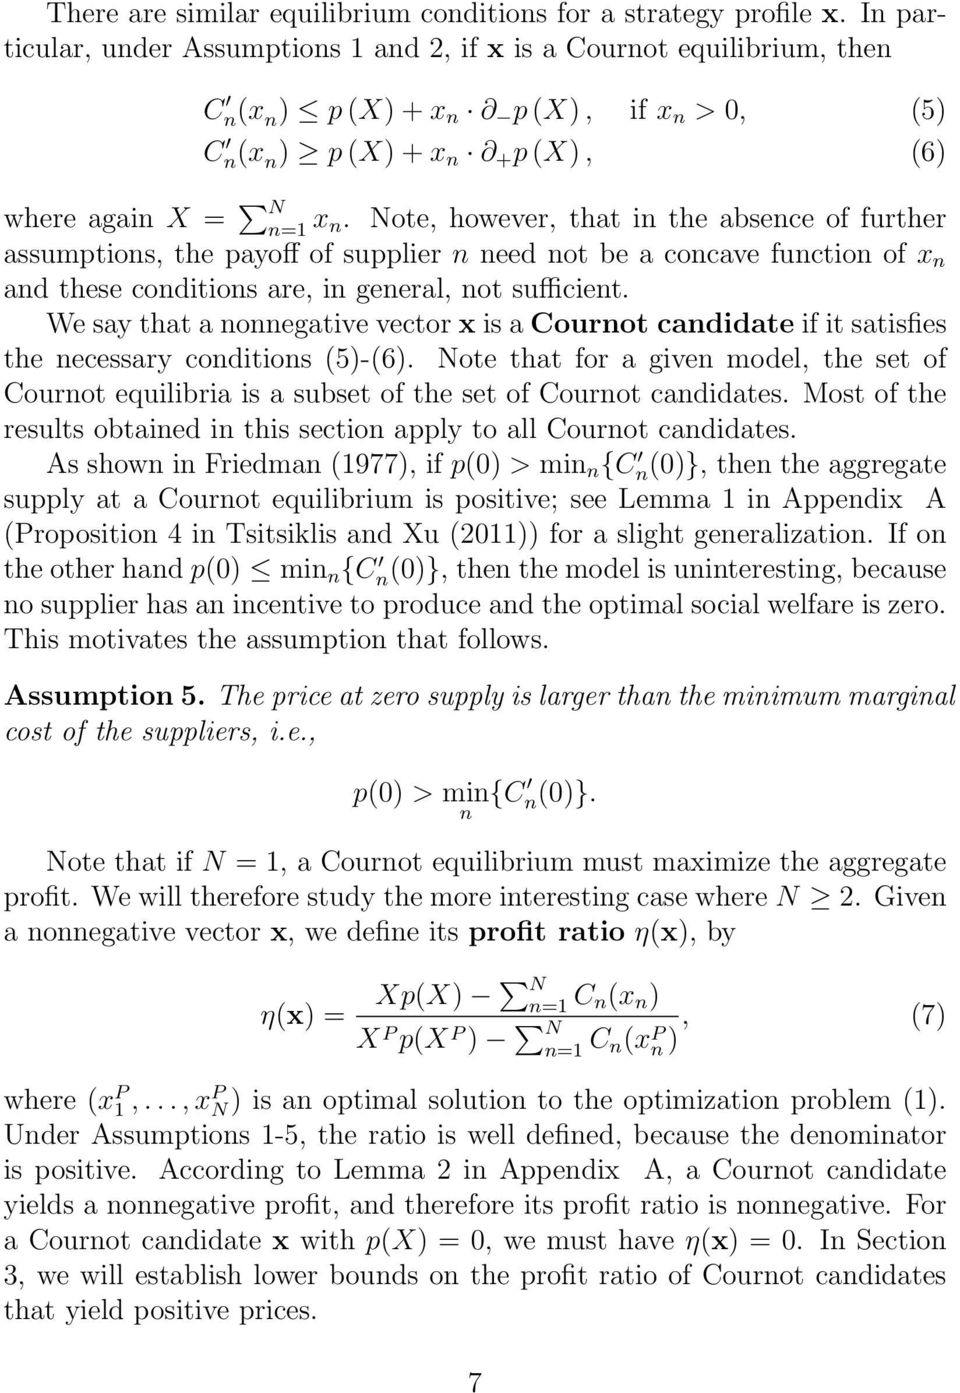 Note, however, that in the absence of further assumptions, the payoff of supplier n need not be a concave function of x n and these conditions are, in general, not sufficient.